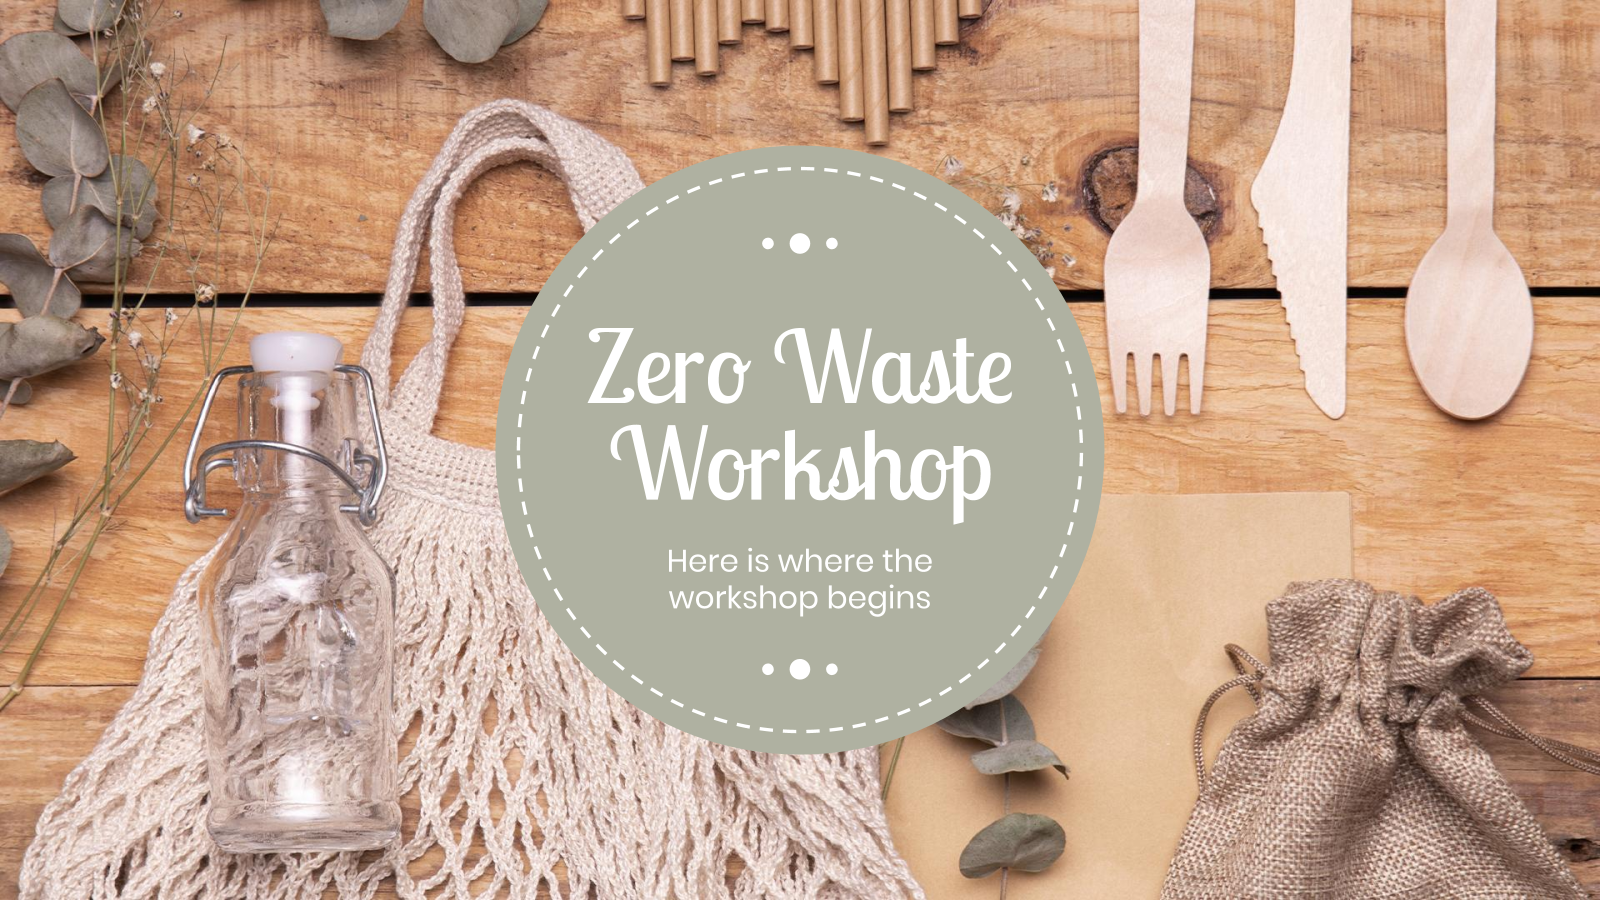 Zero Waste Workshop presentation template